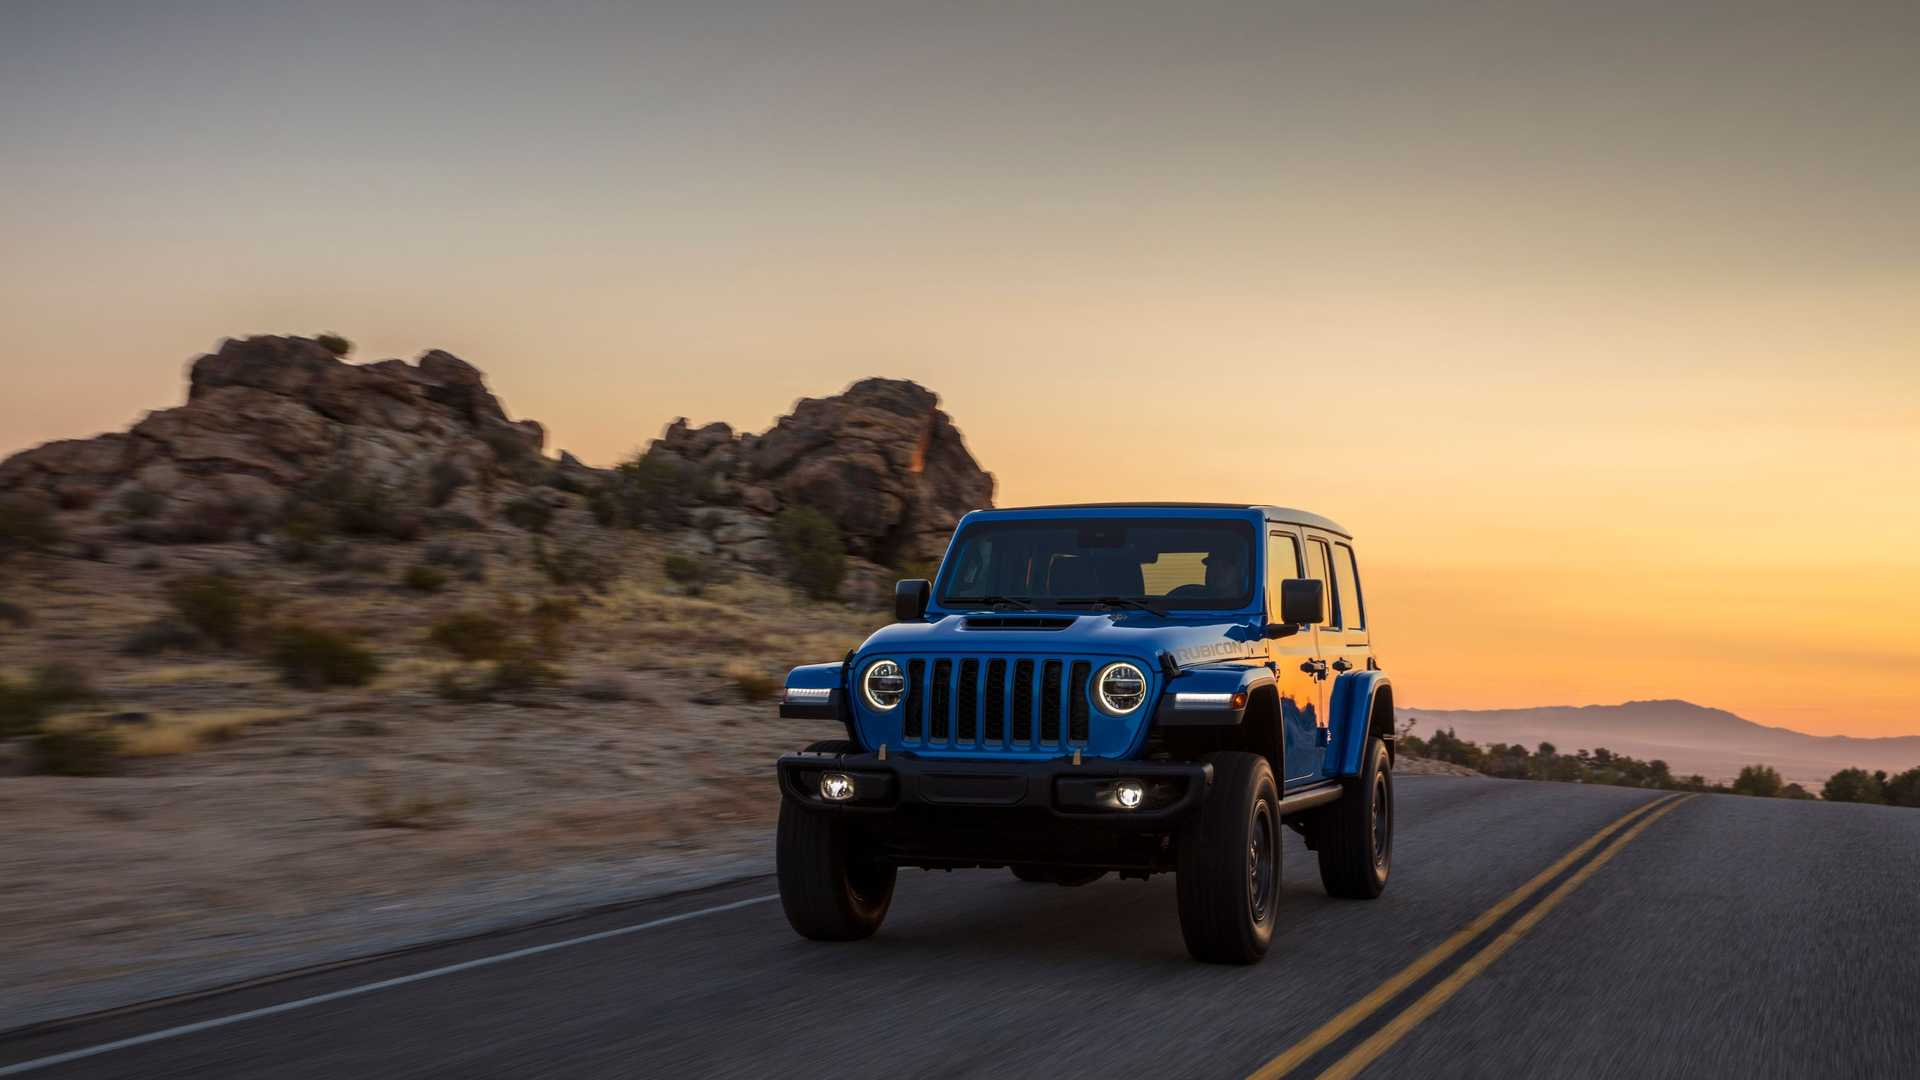 2021-jeep-wrangler-rubicon-392-front-view-11